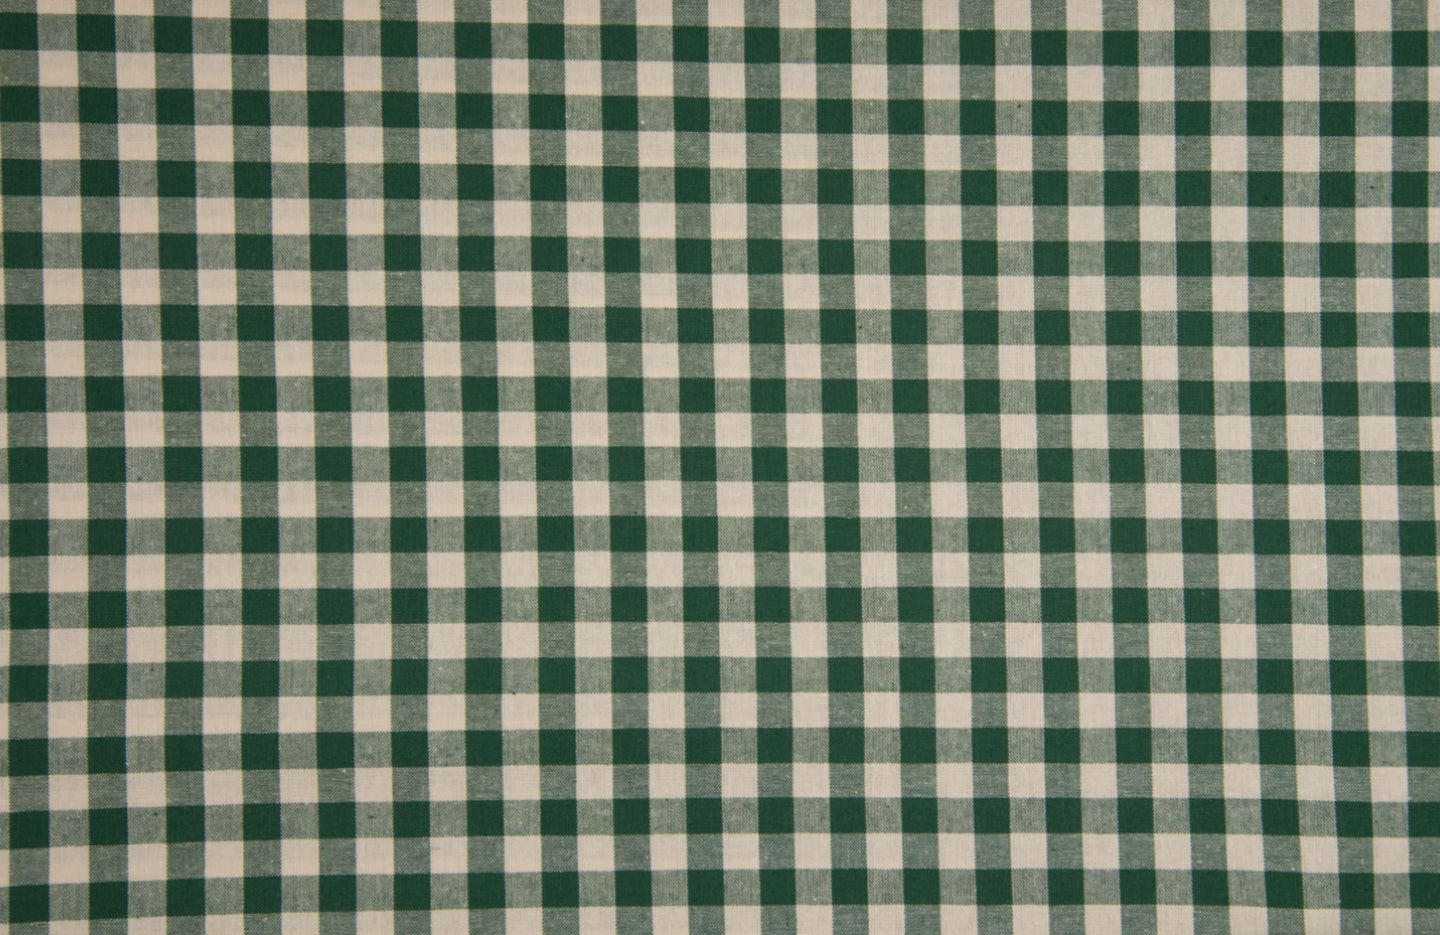 Cotton Poplin- Vichi Check 2 Tone Green